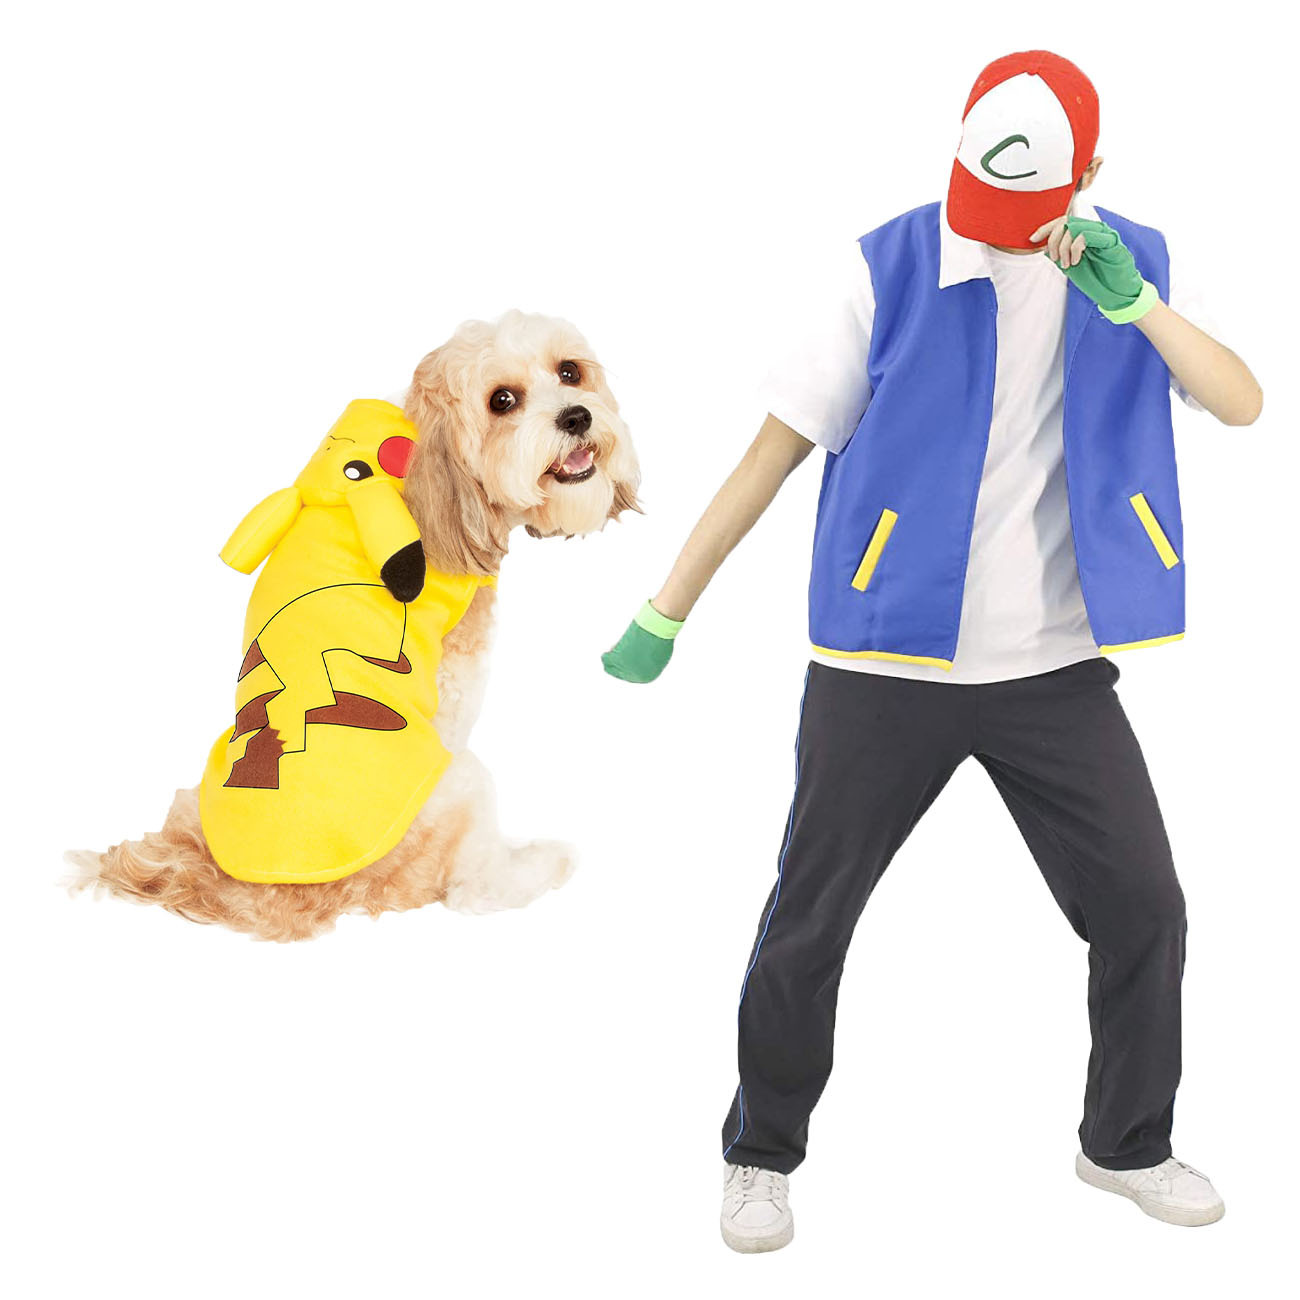 Ash and Pikachu dog and owner Halloween costumes